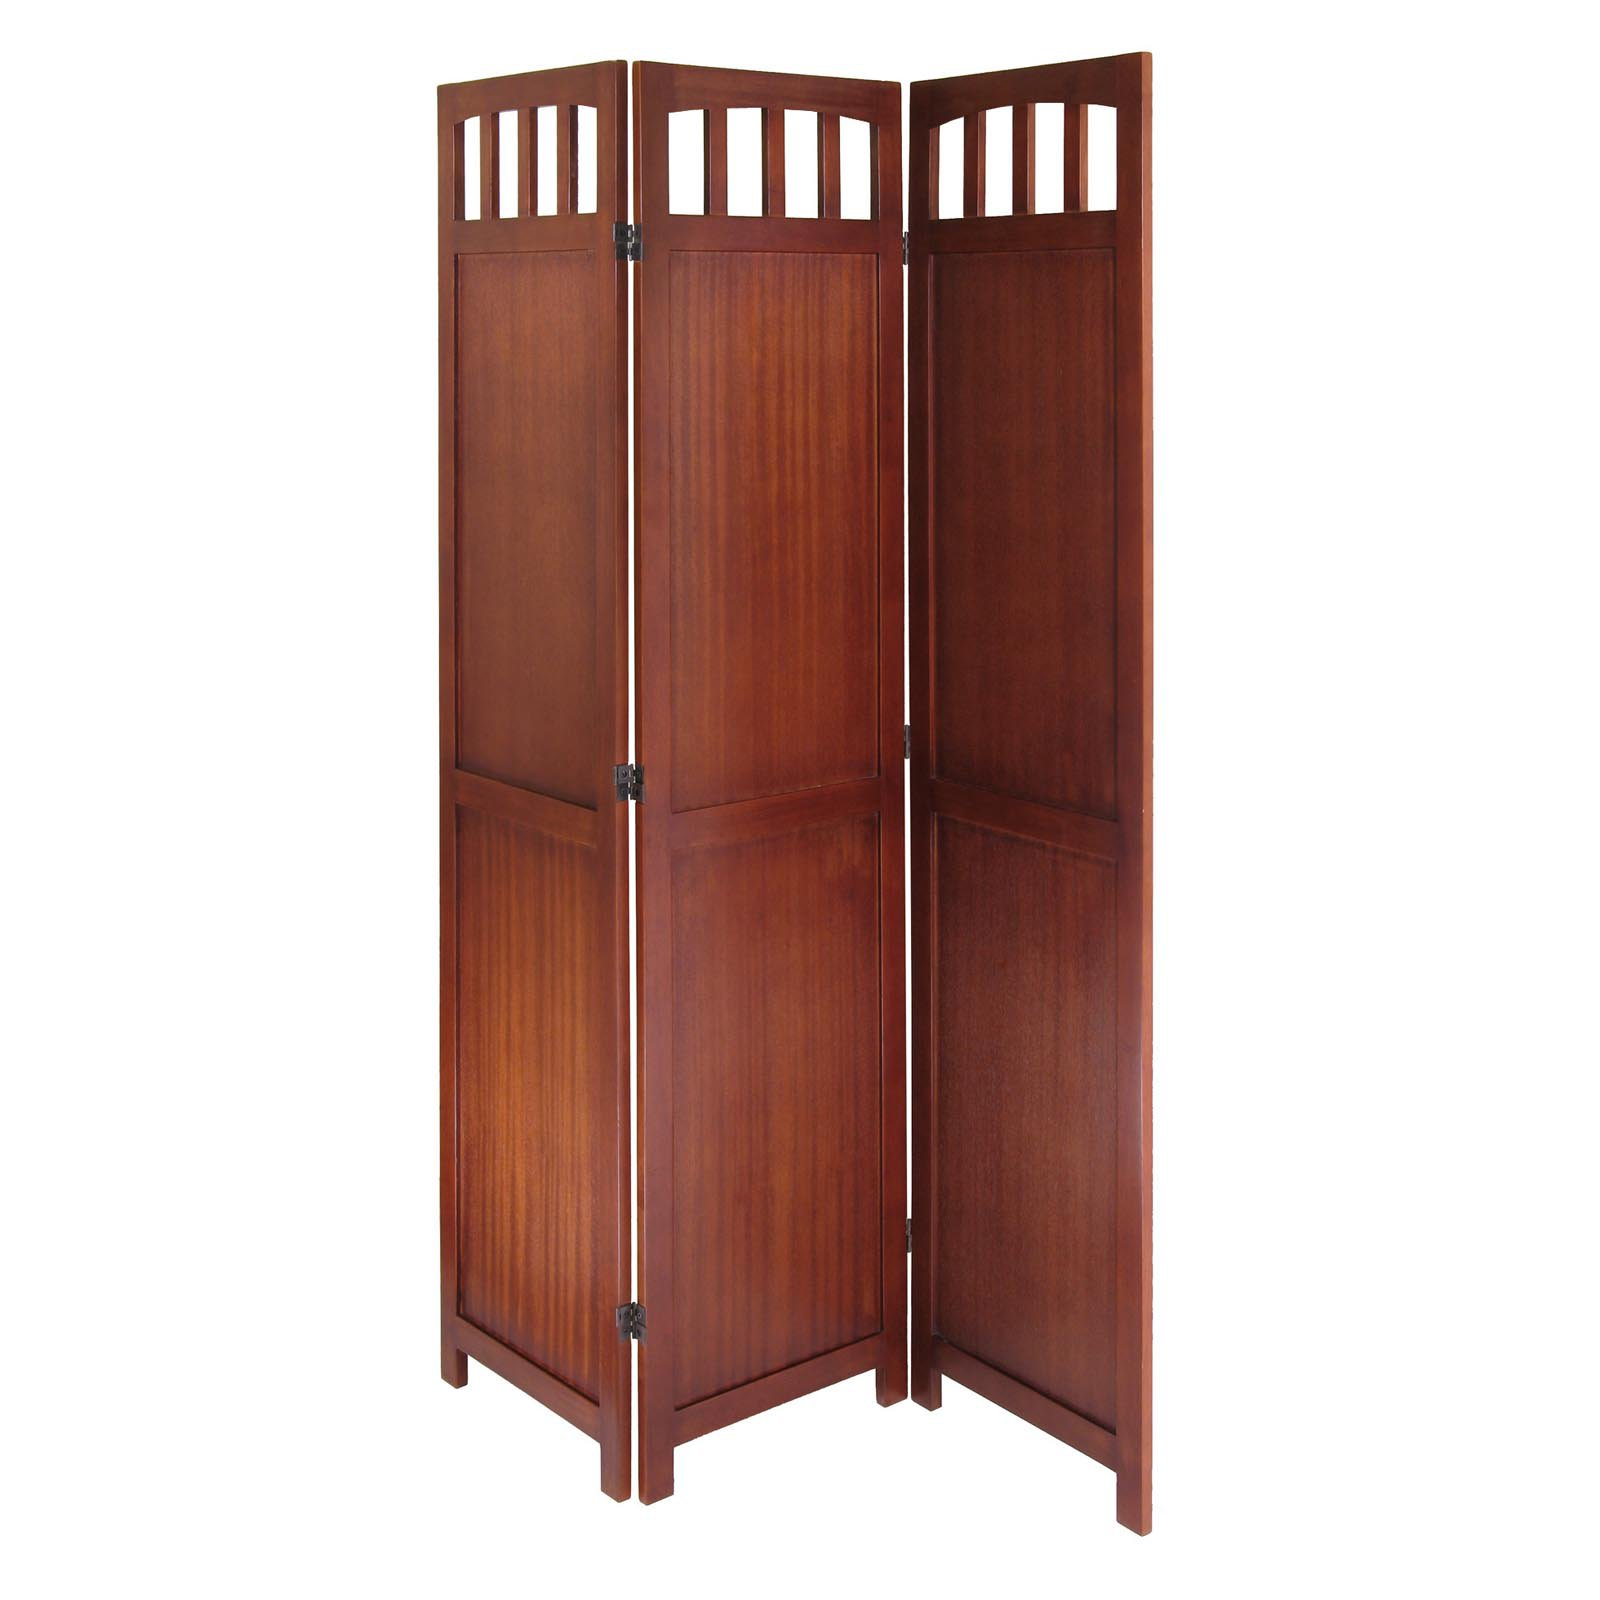 3 Panel Wood Folding Screen Walmartcom